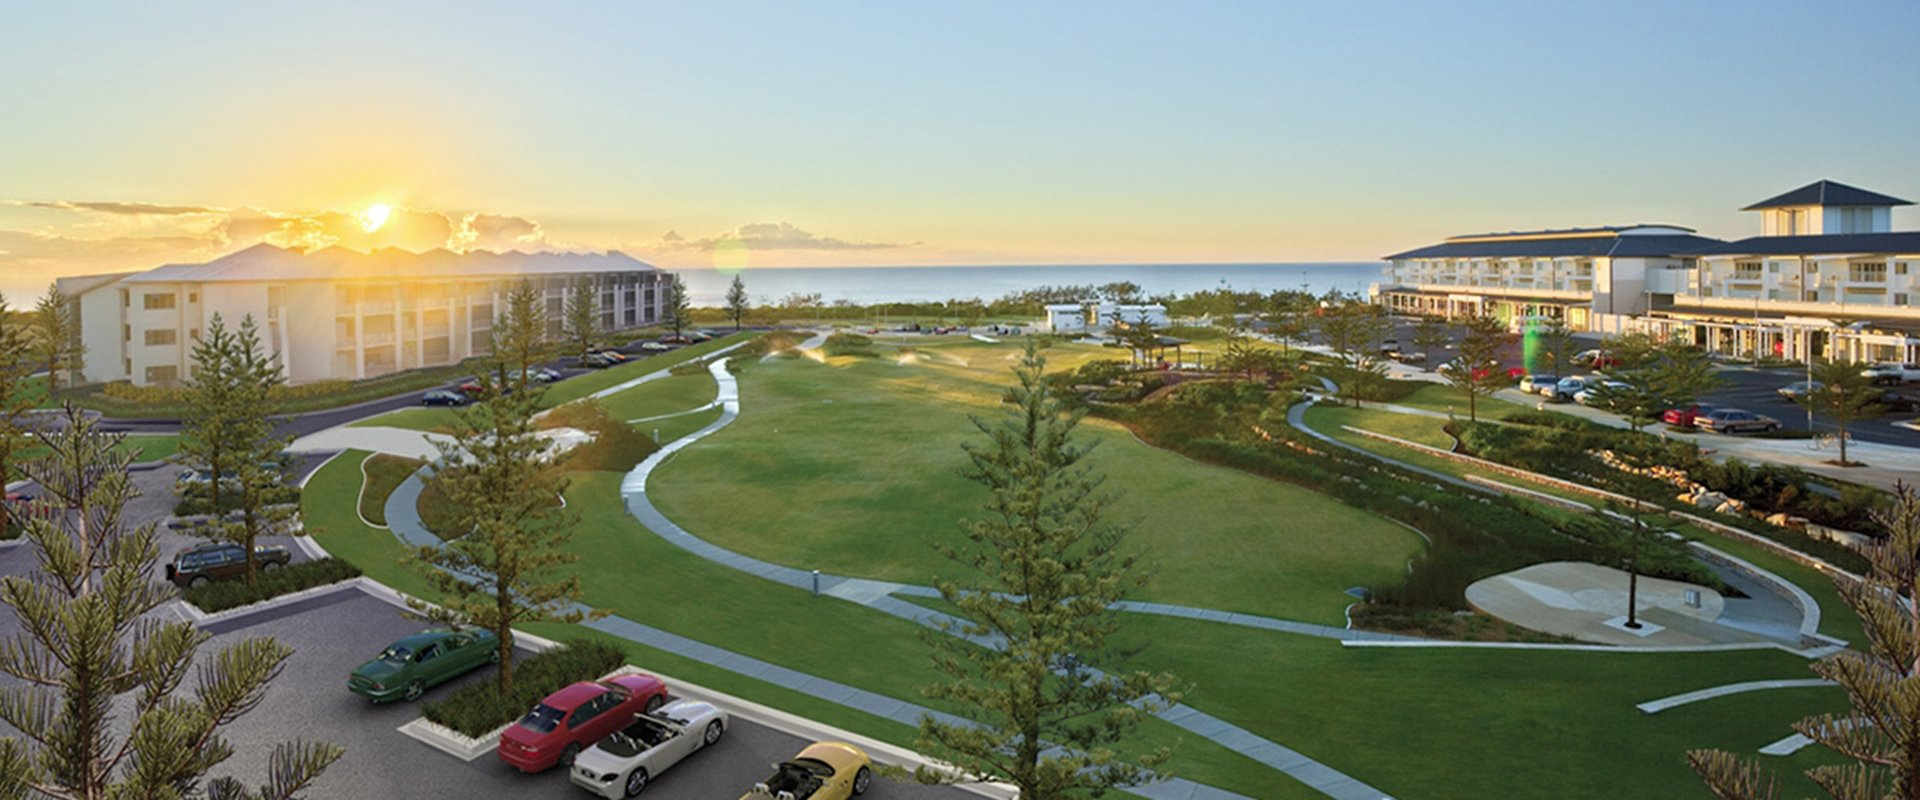 Salt Village Kingscliff | Conference Venues Regional NSW | Conference Venues New South Wales